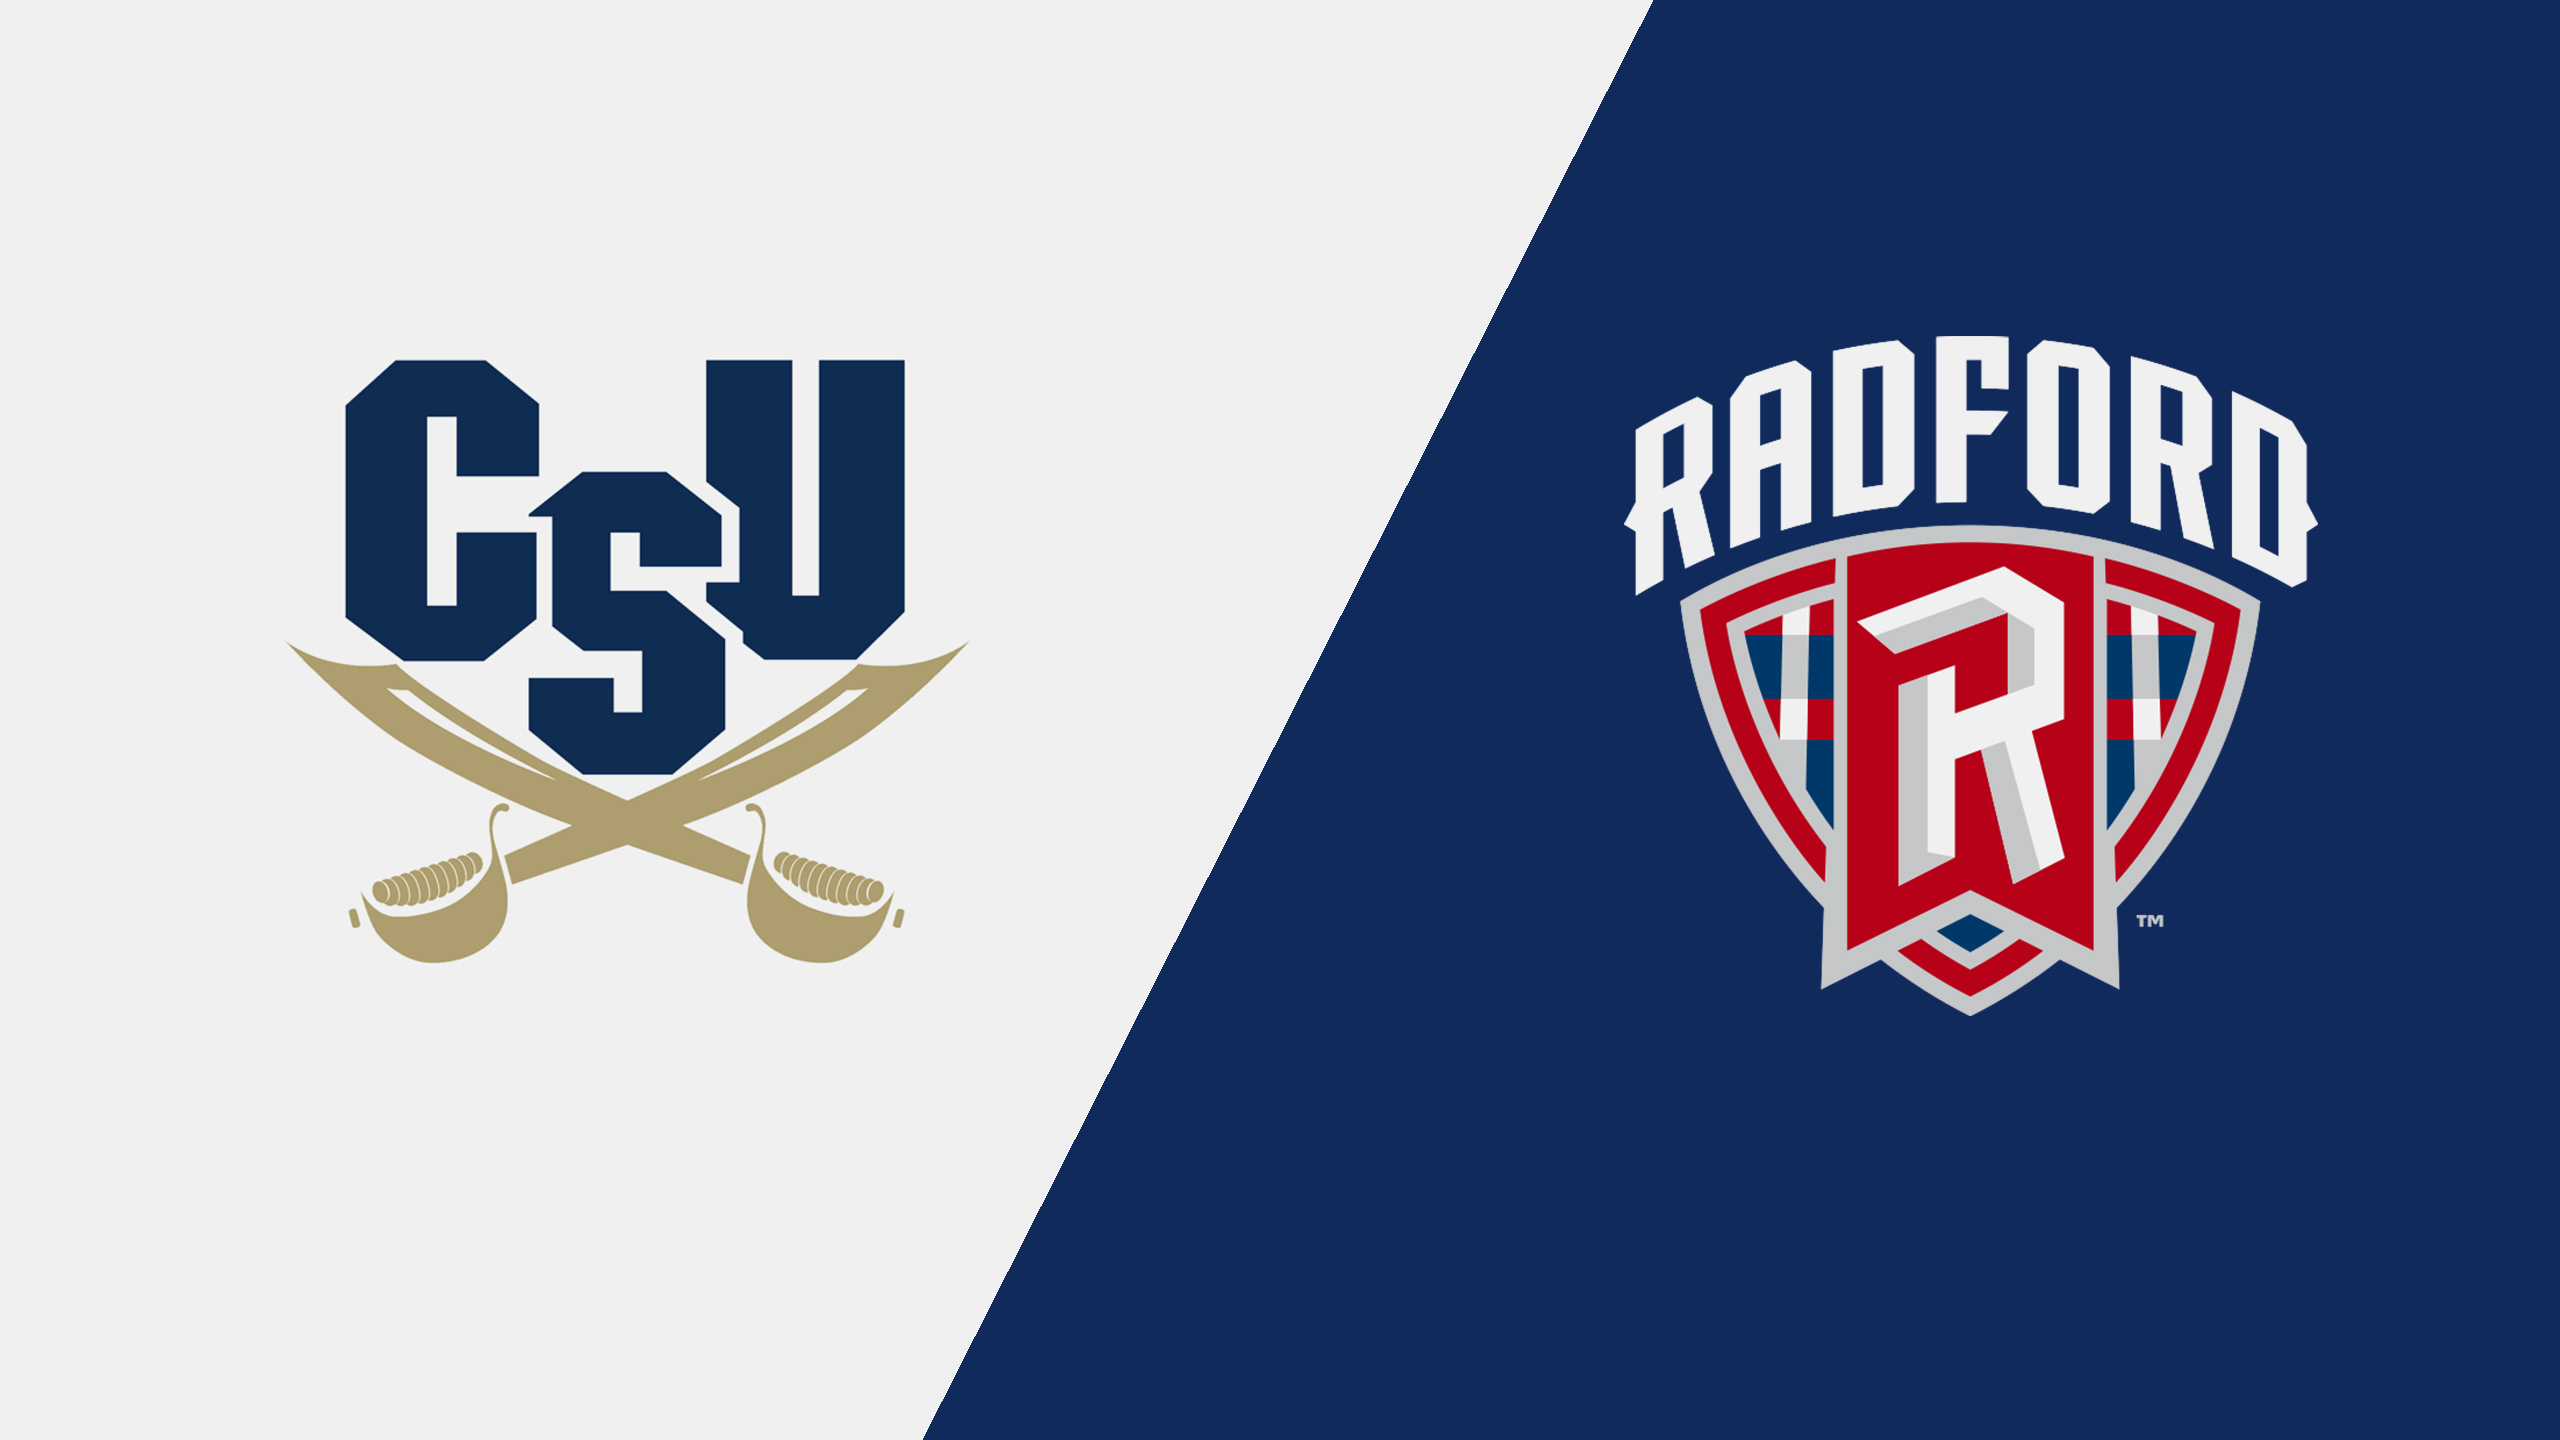 Charleston Southern vs. Radford (Game 4)